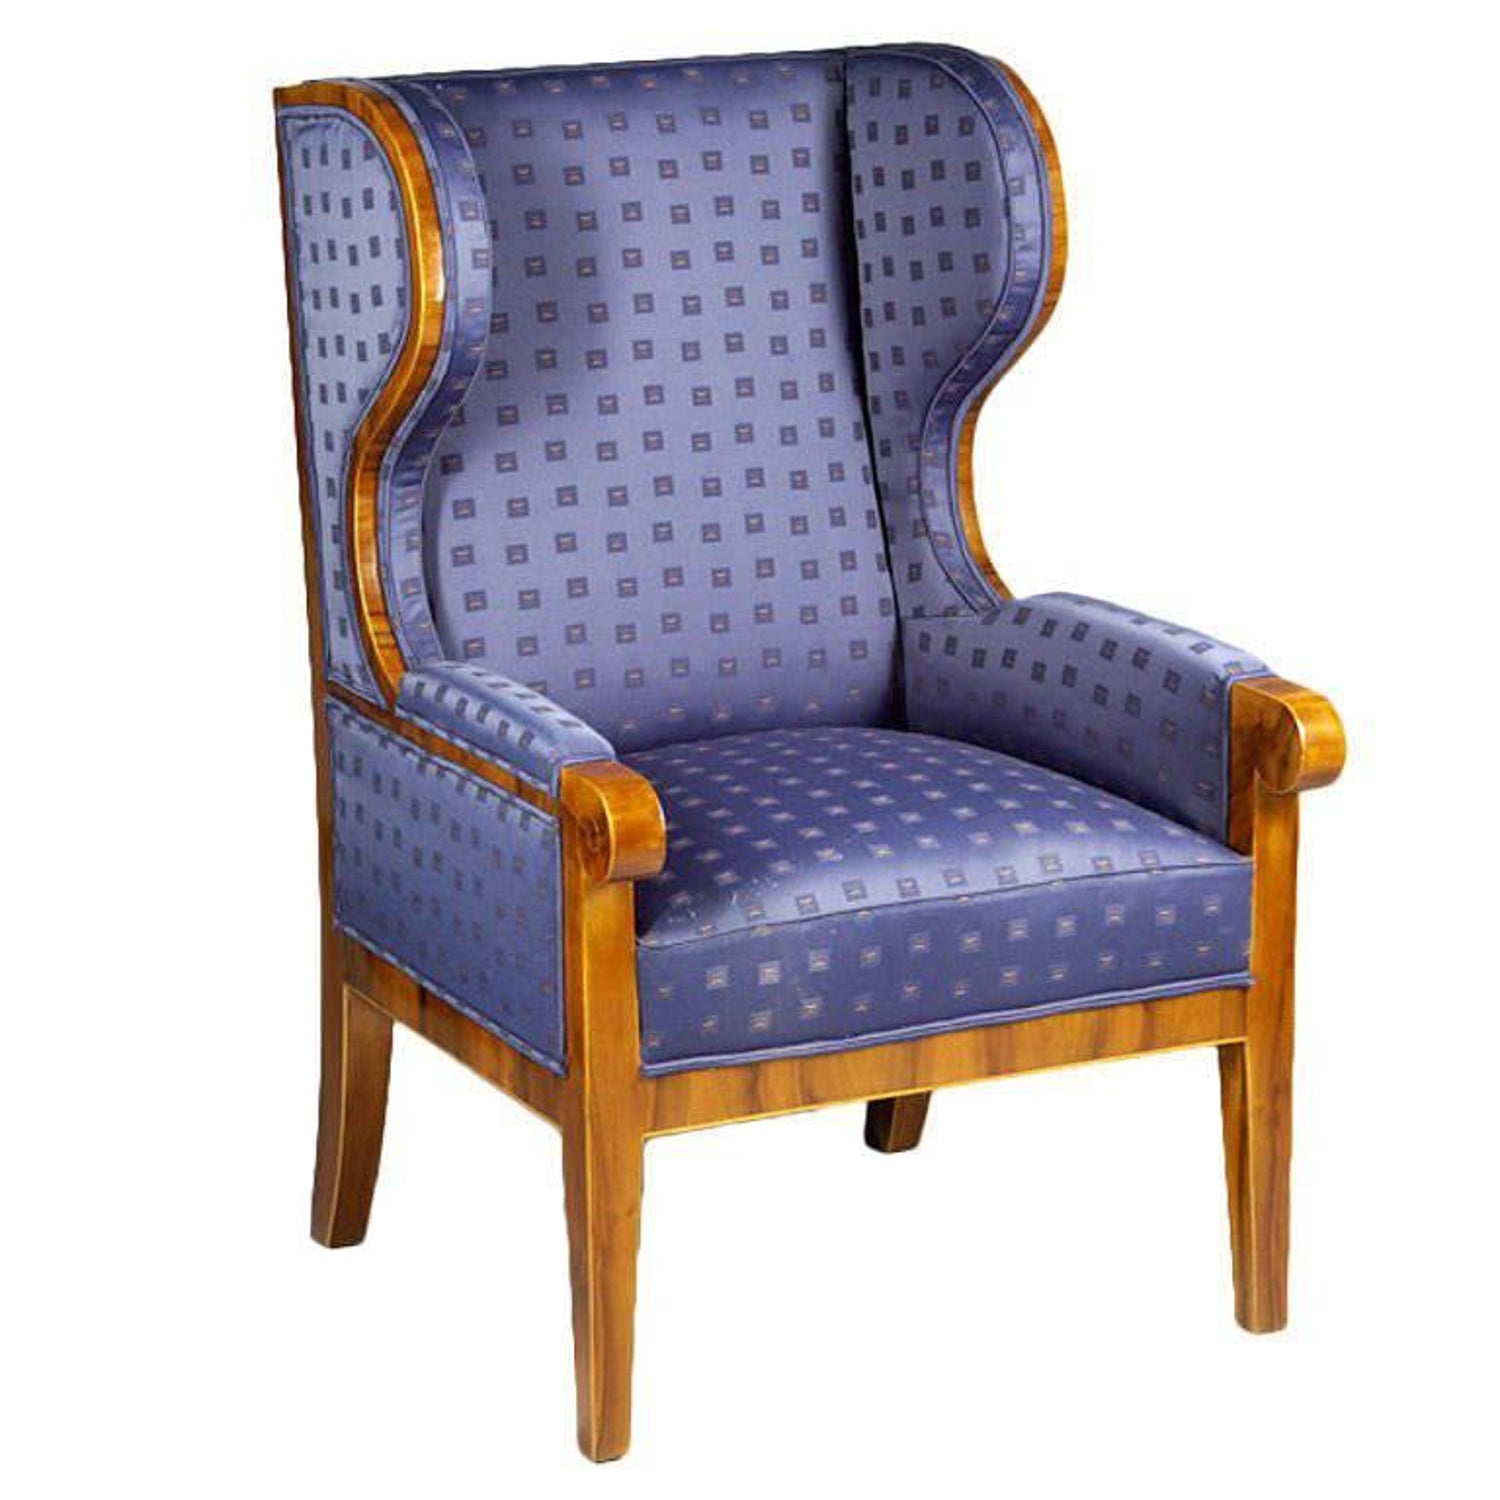 Antique and Vintage Wingback Chairs 793 For Sale at 1stdibs